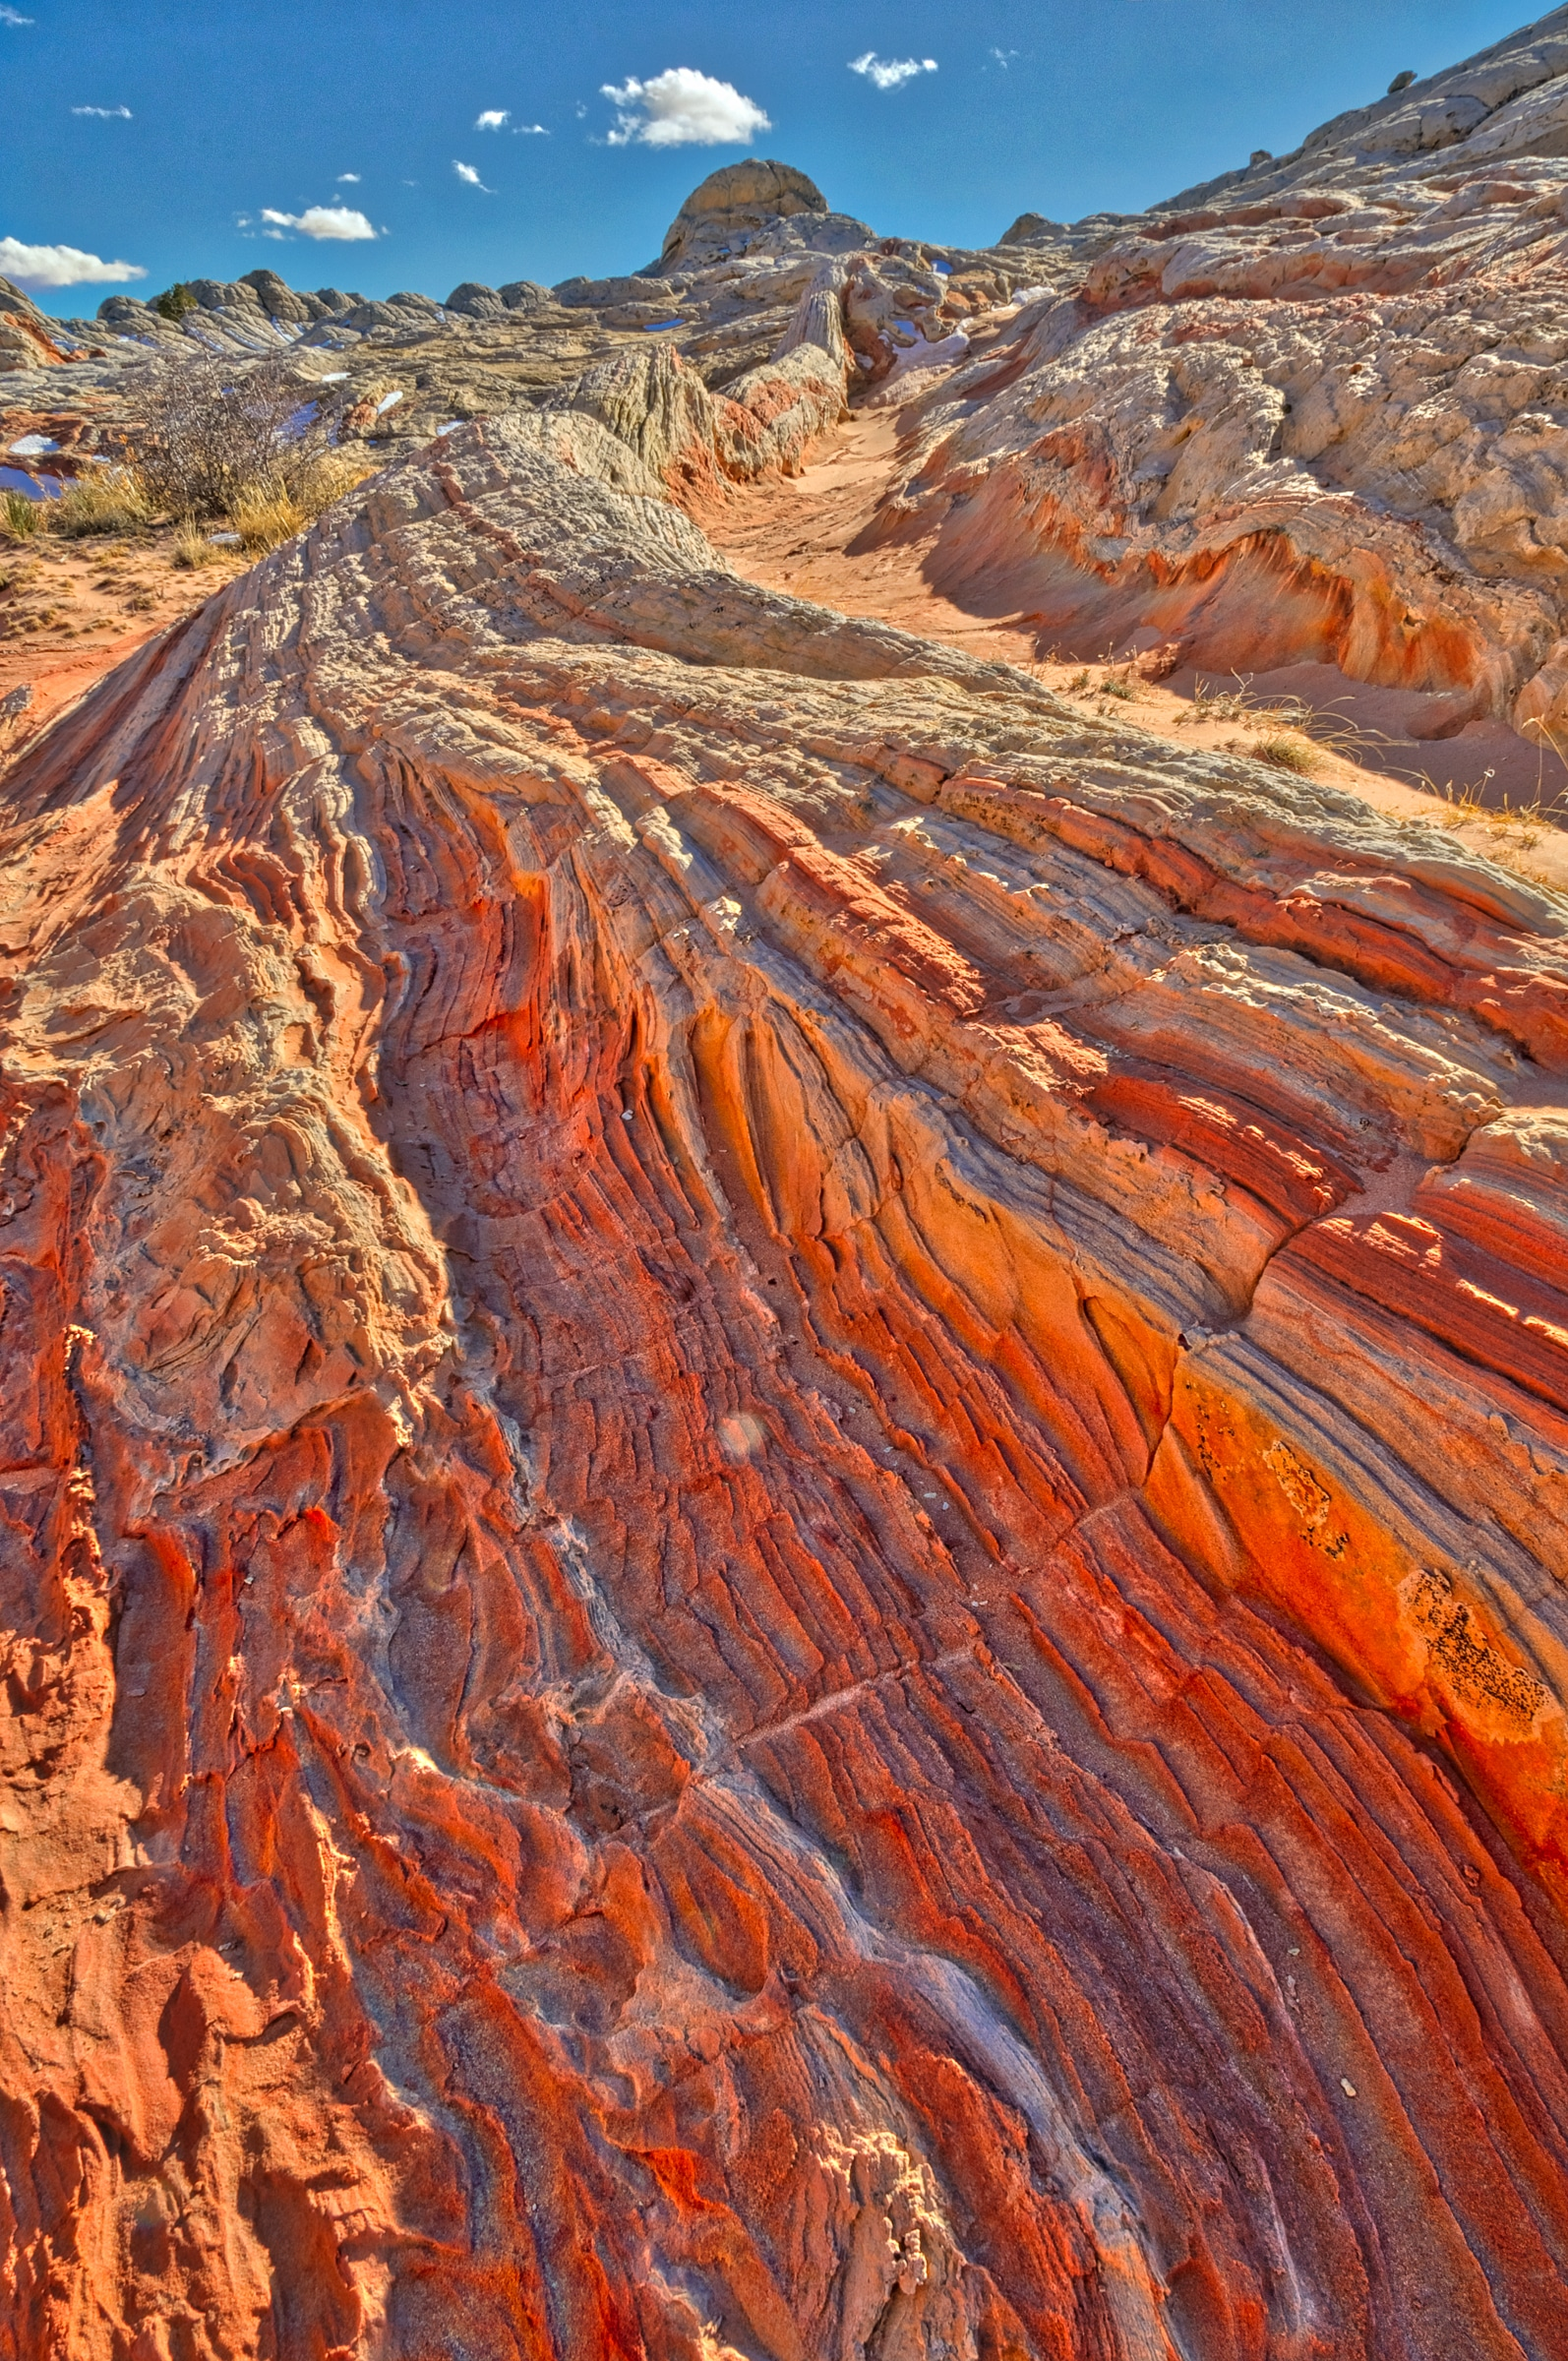 Rock layers on edge in White Pocket in the South Coyote Buttes area of the Vermillion Cliffs National Monument.